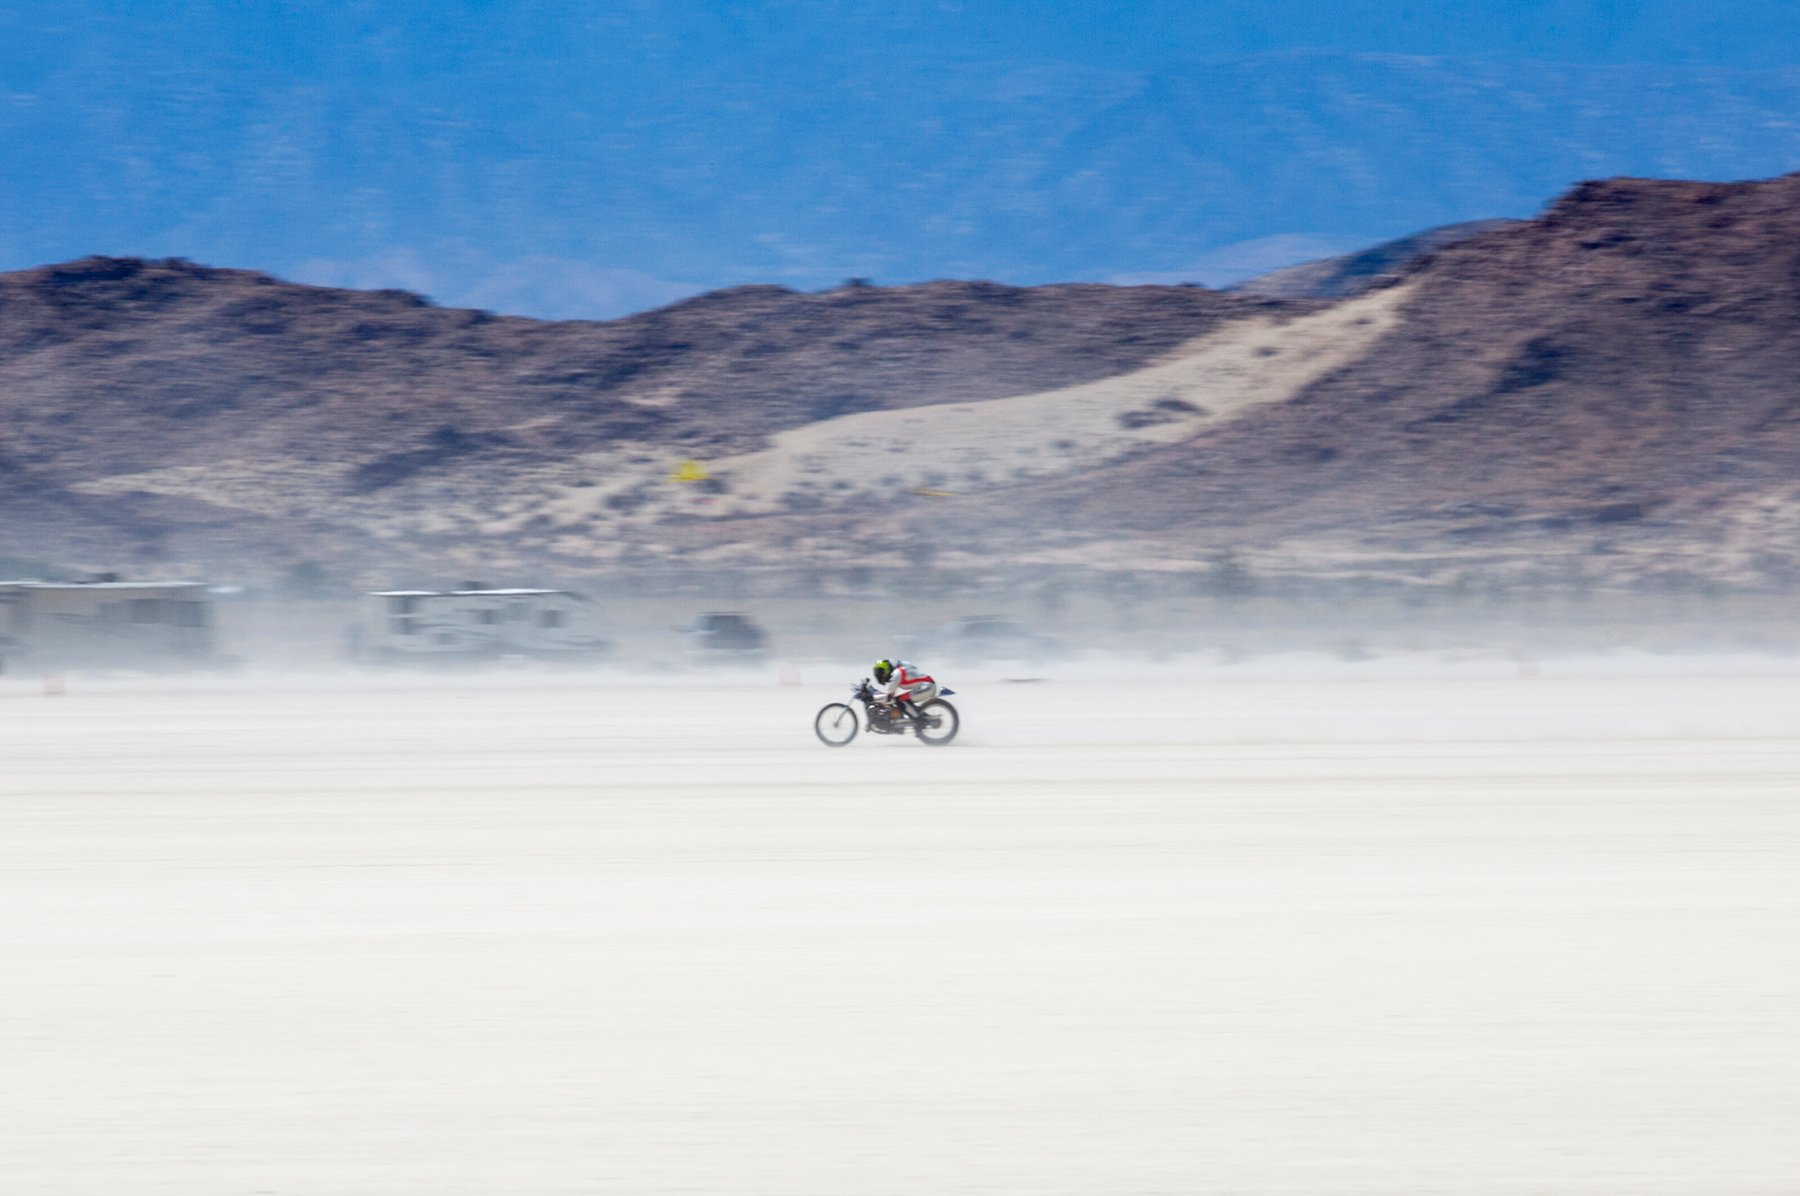 Land Speed Record Racing, El Mirage Dry Lake, California.